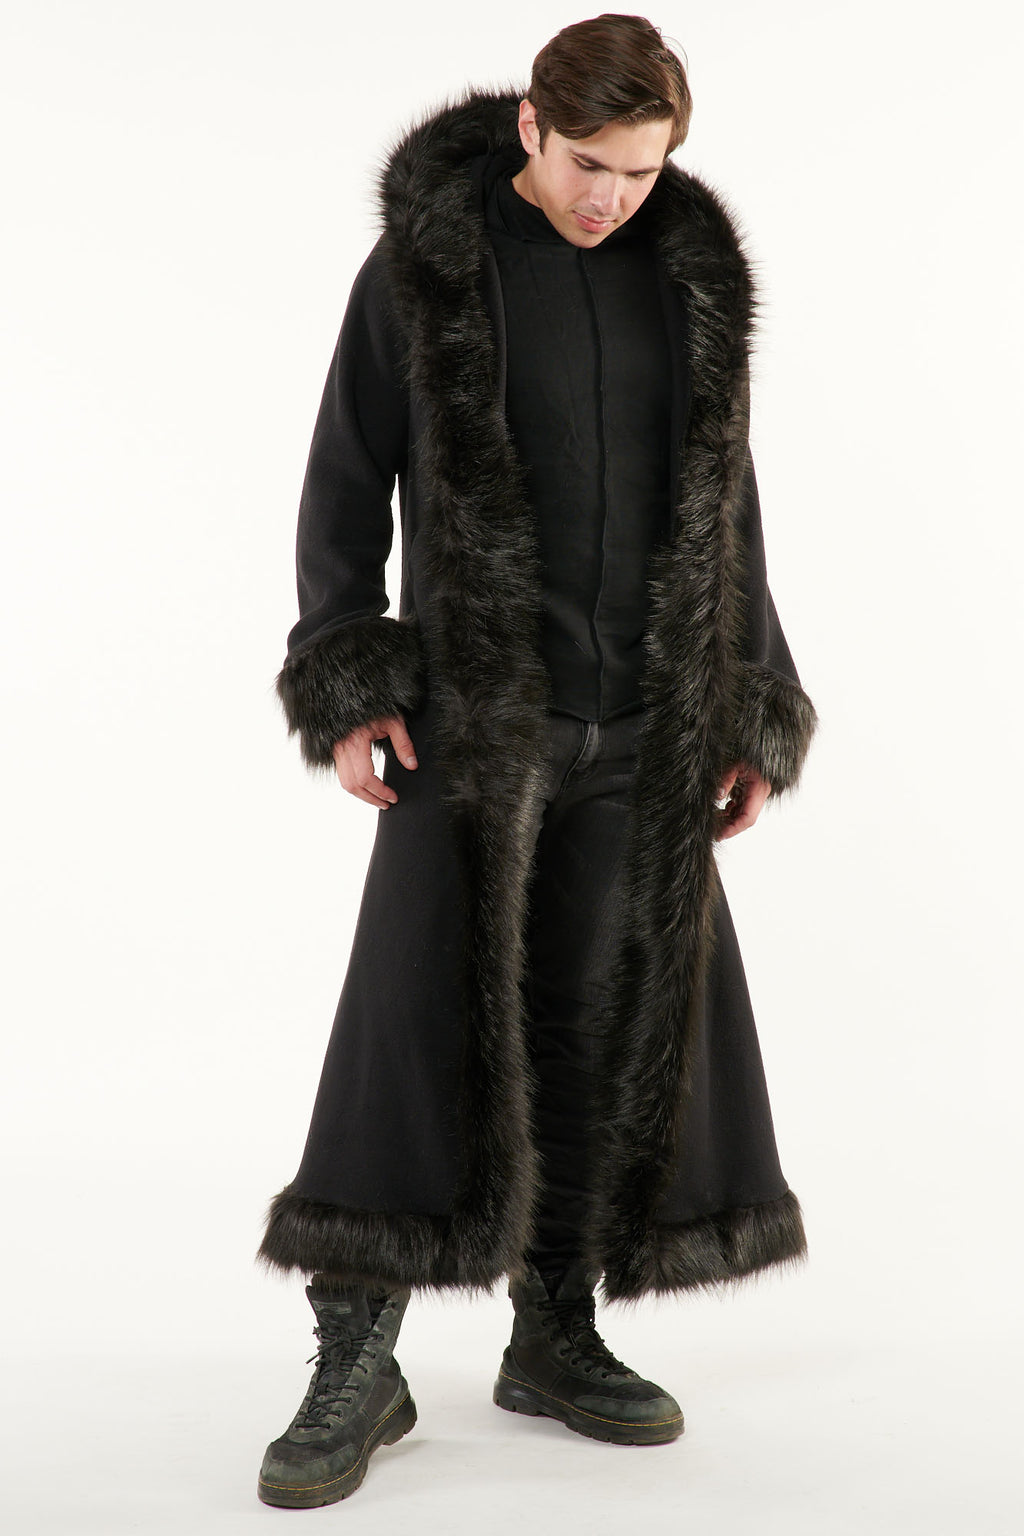 Classic Baron Coat: Black Coat + Black Faux Fur Trim